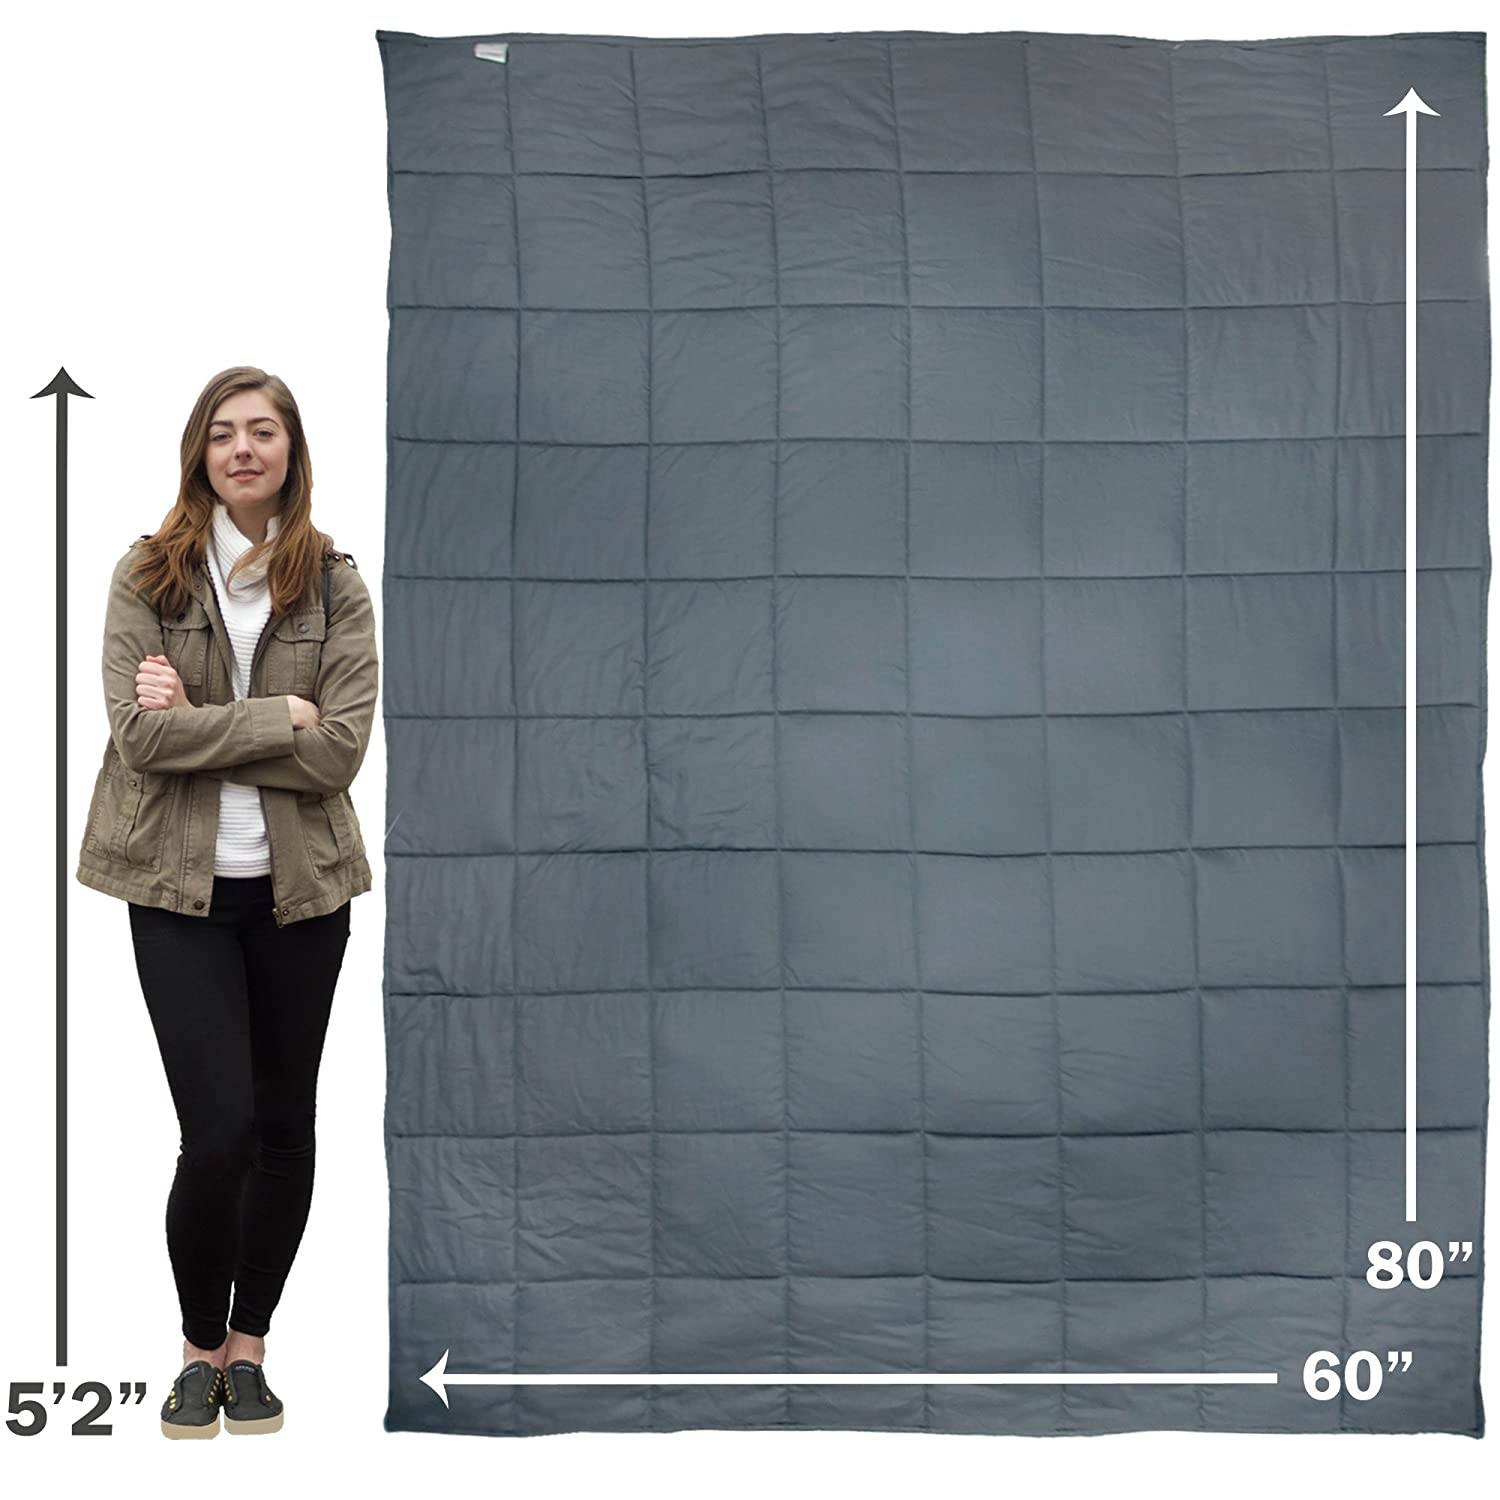 Premium Oversized 15 lb Weighted Anxiety Blanket for Adults weighing 100-150 lbs, Helps with Anxiety, Autism, OCD, ADHD, and Sensory Disorders (60